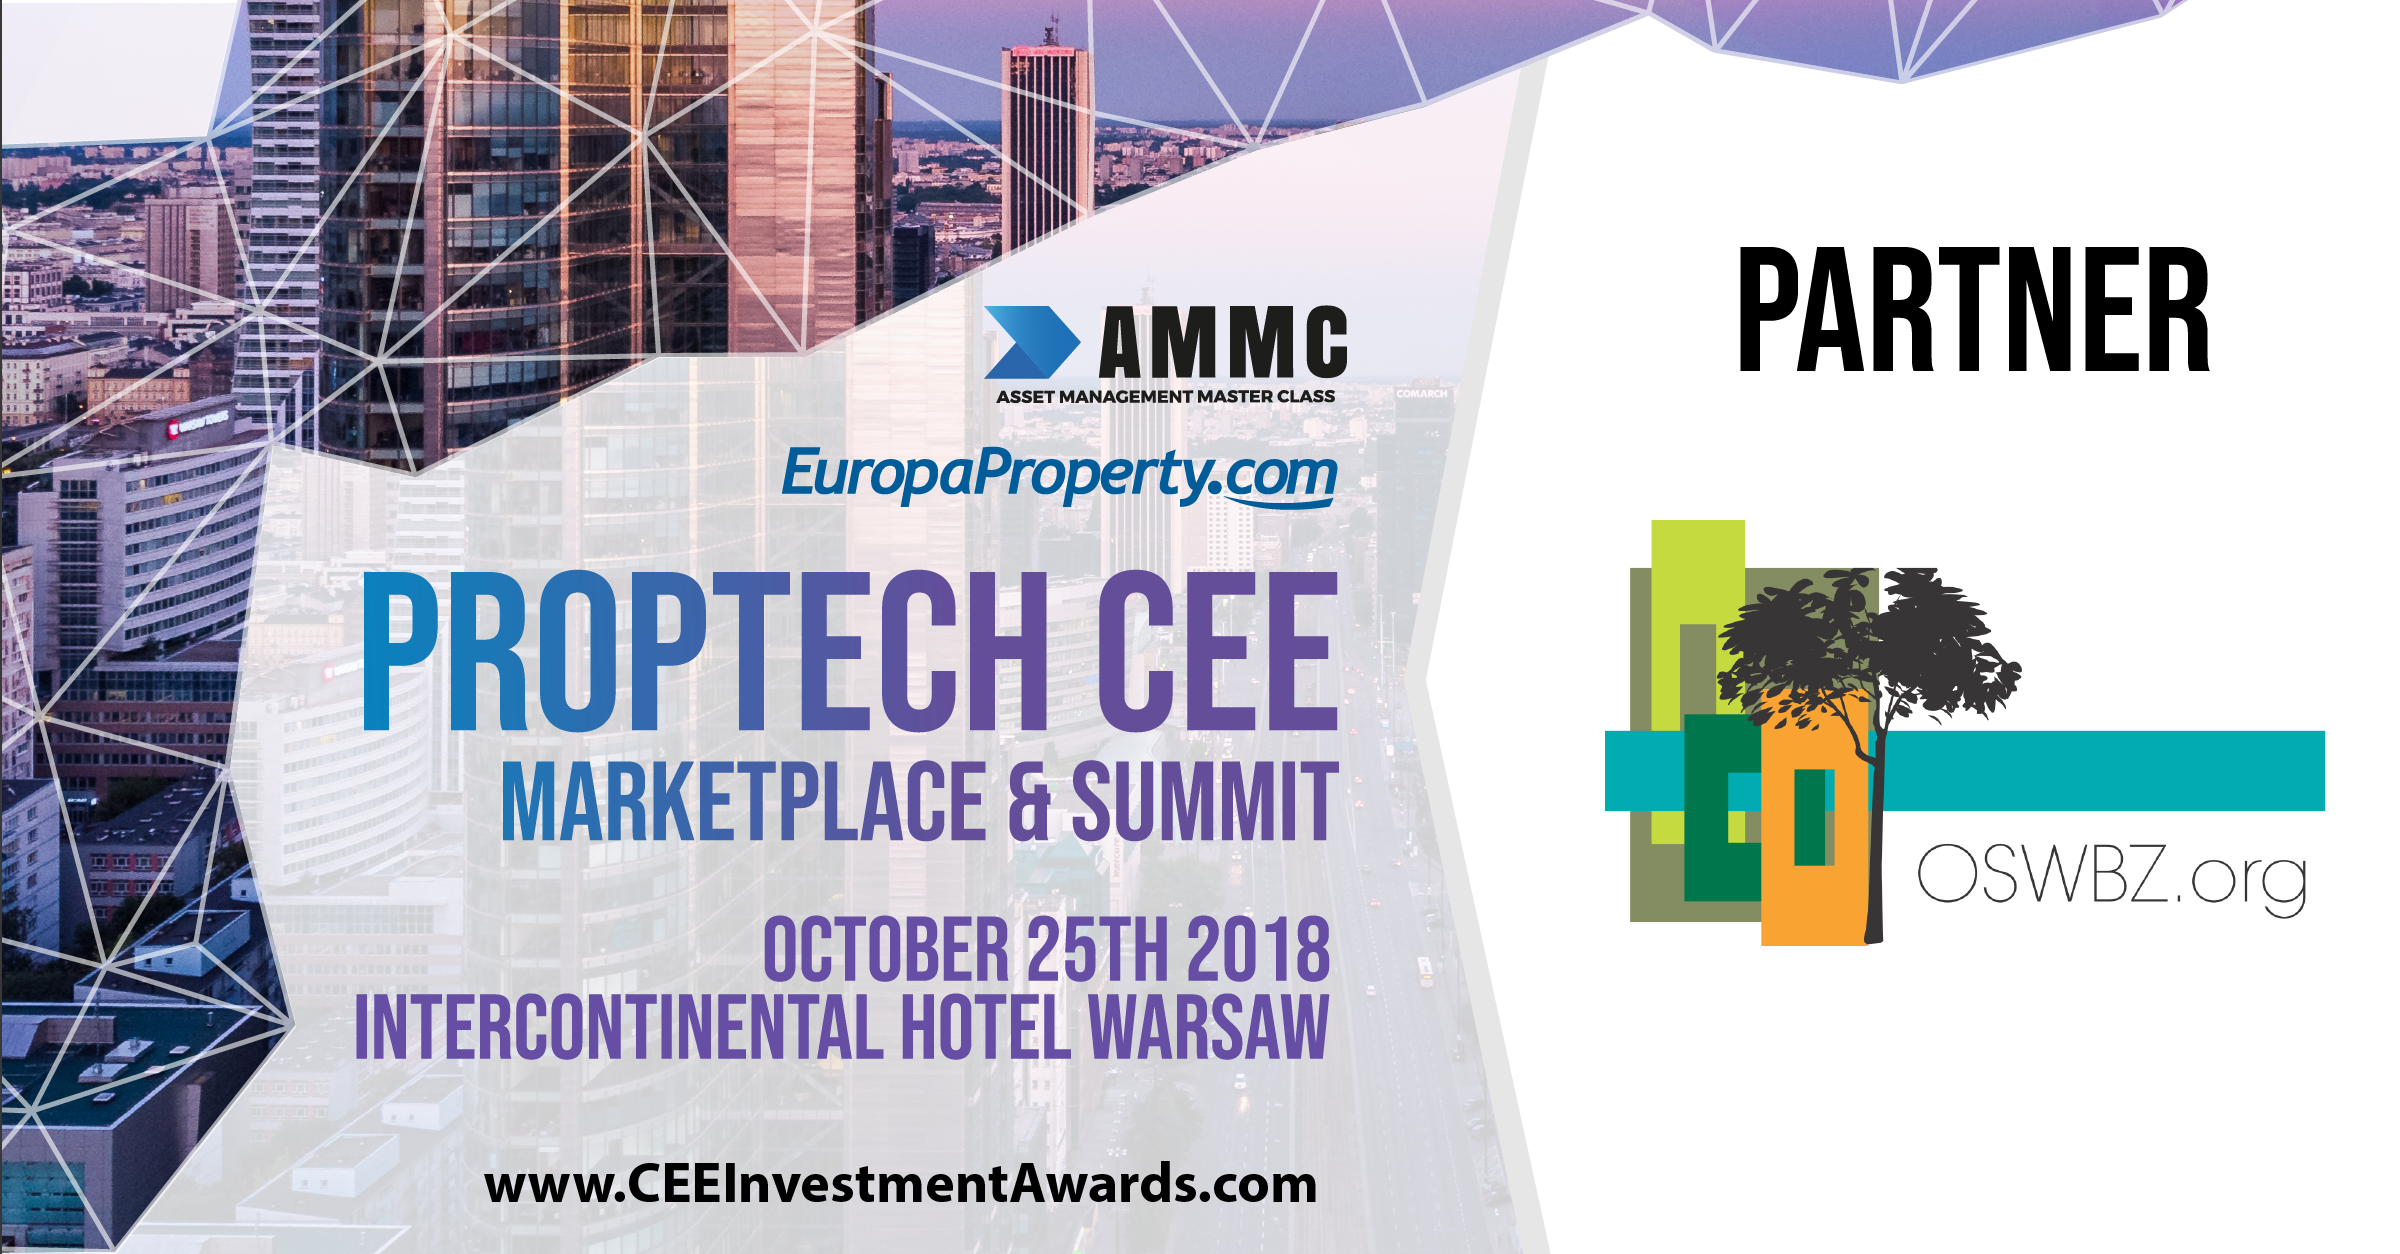 Partner Proptech Marketplace & Summit